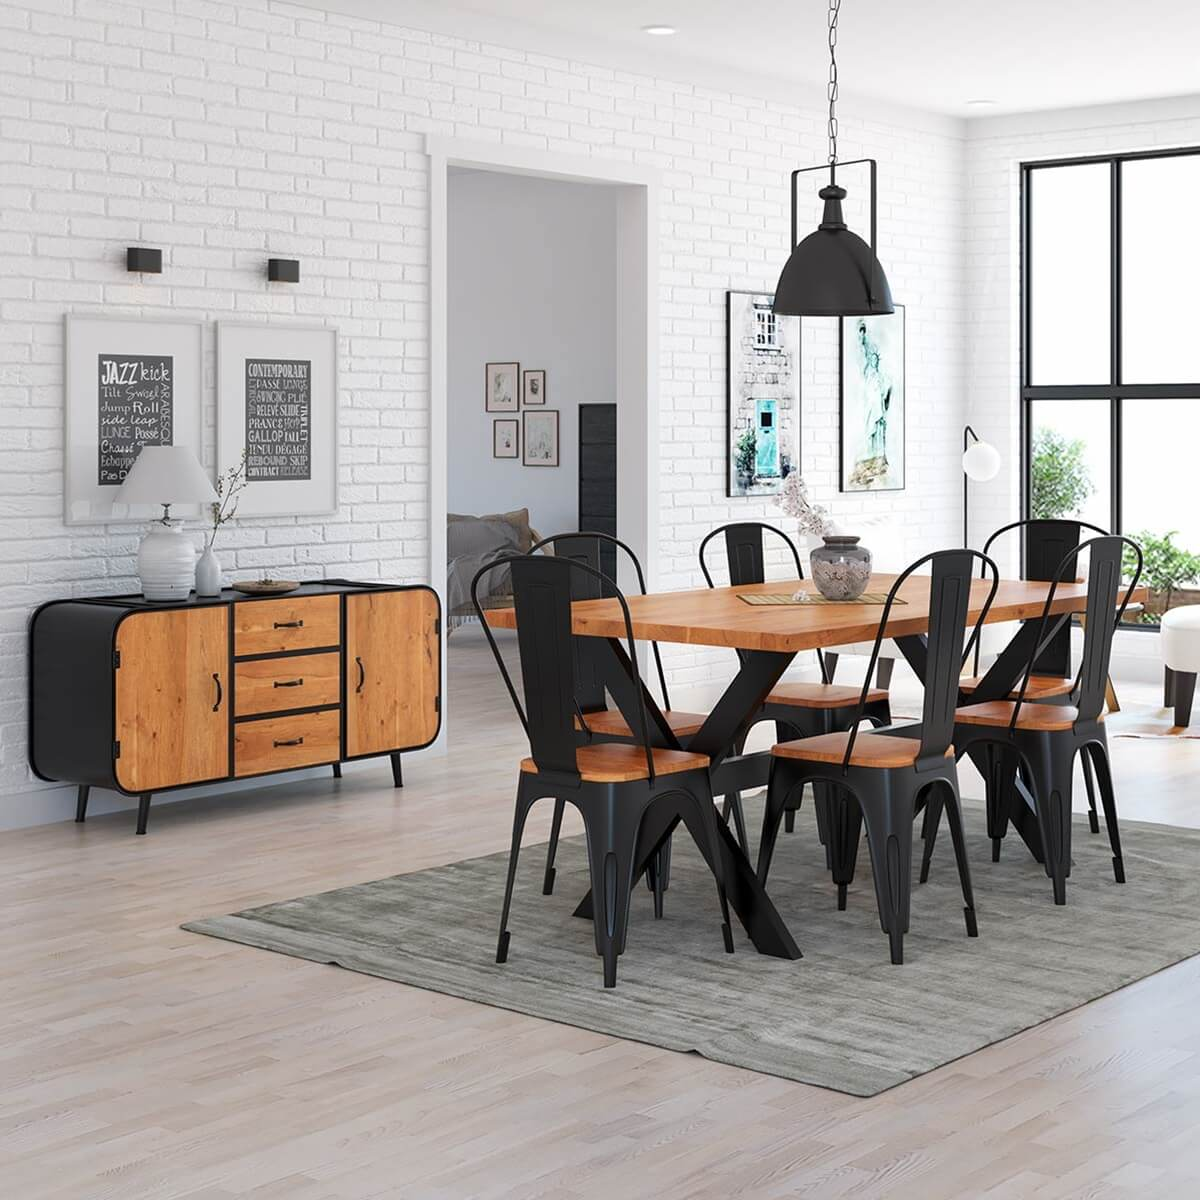 Langley Rustic Solid Wood 8 Piece Industrial Iron Dining Room Set